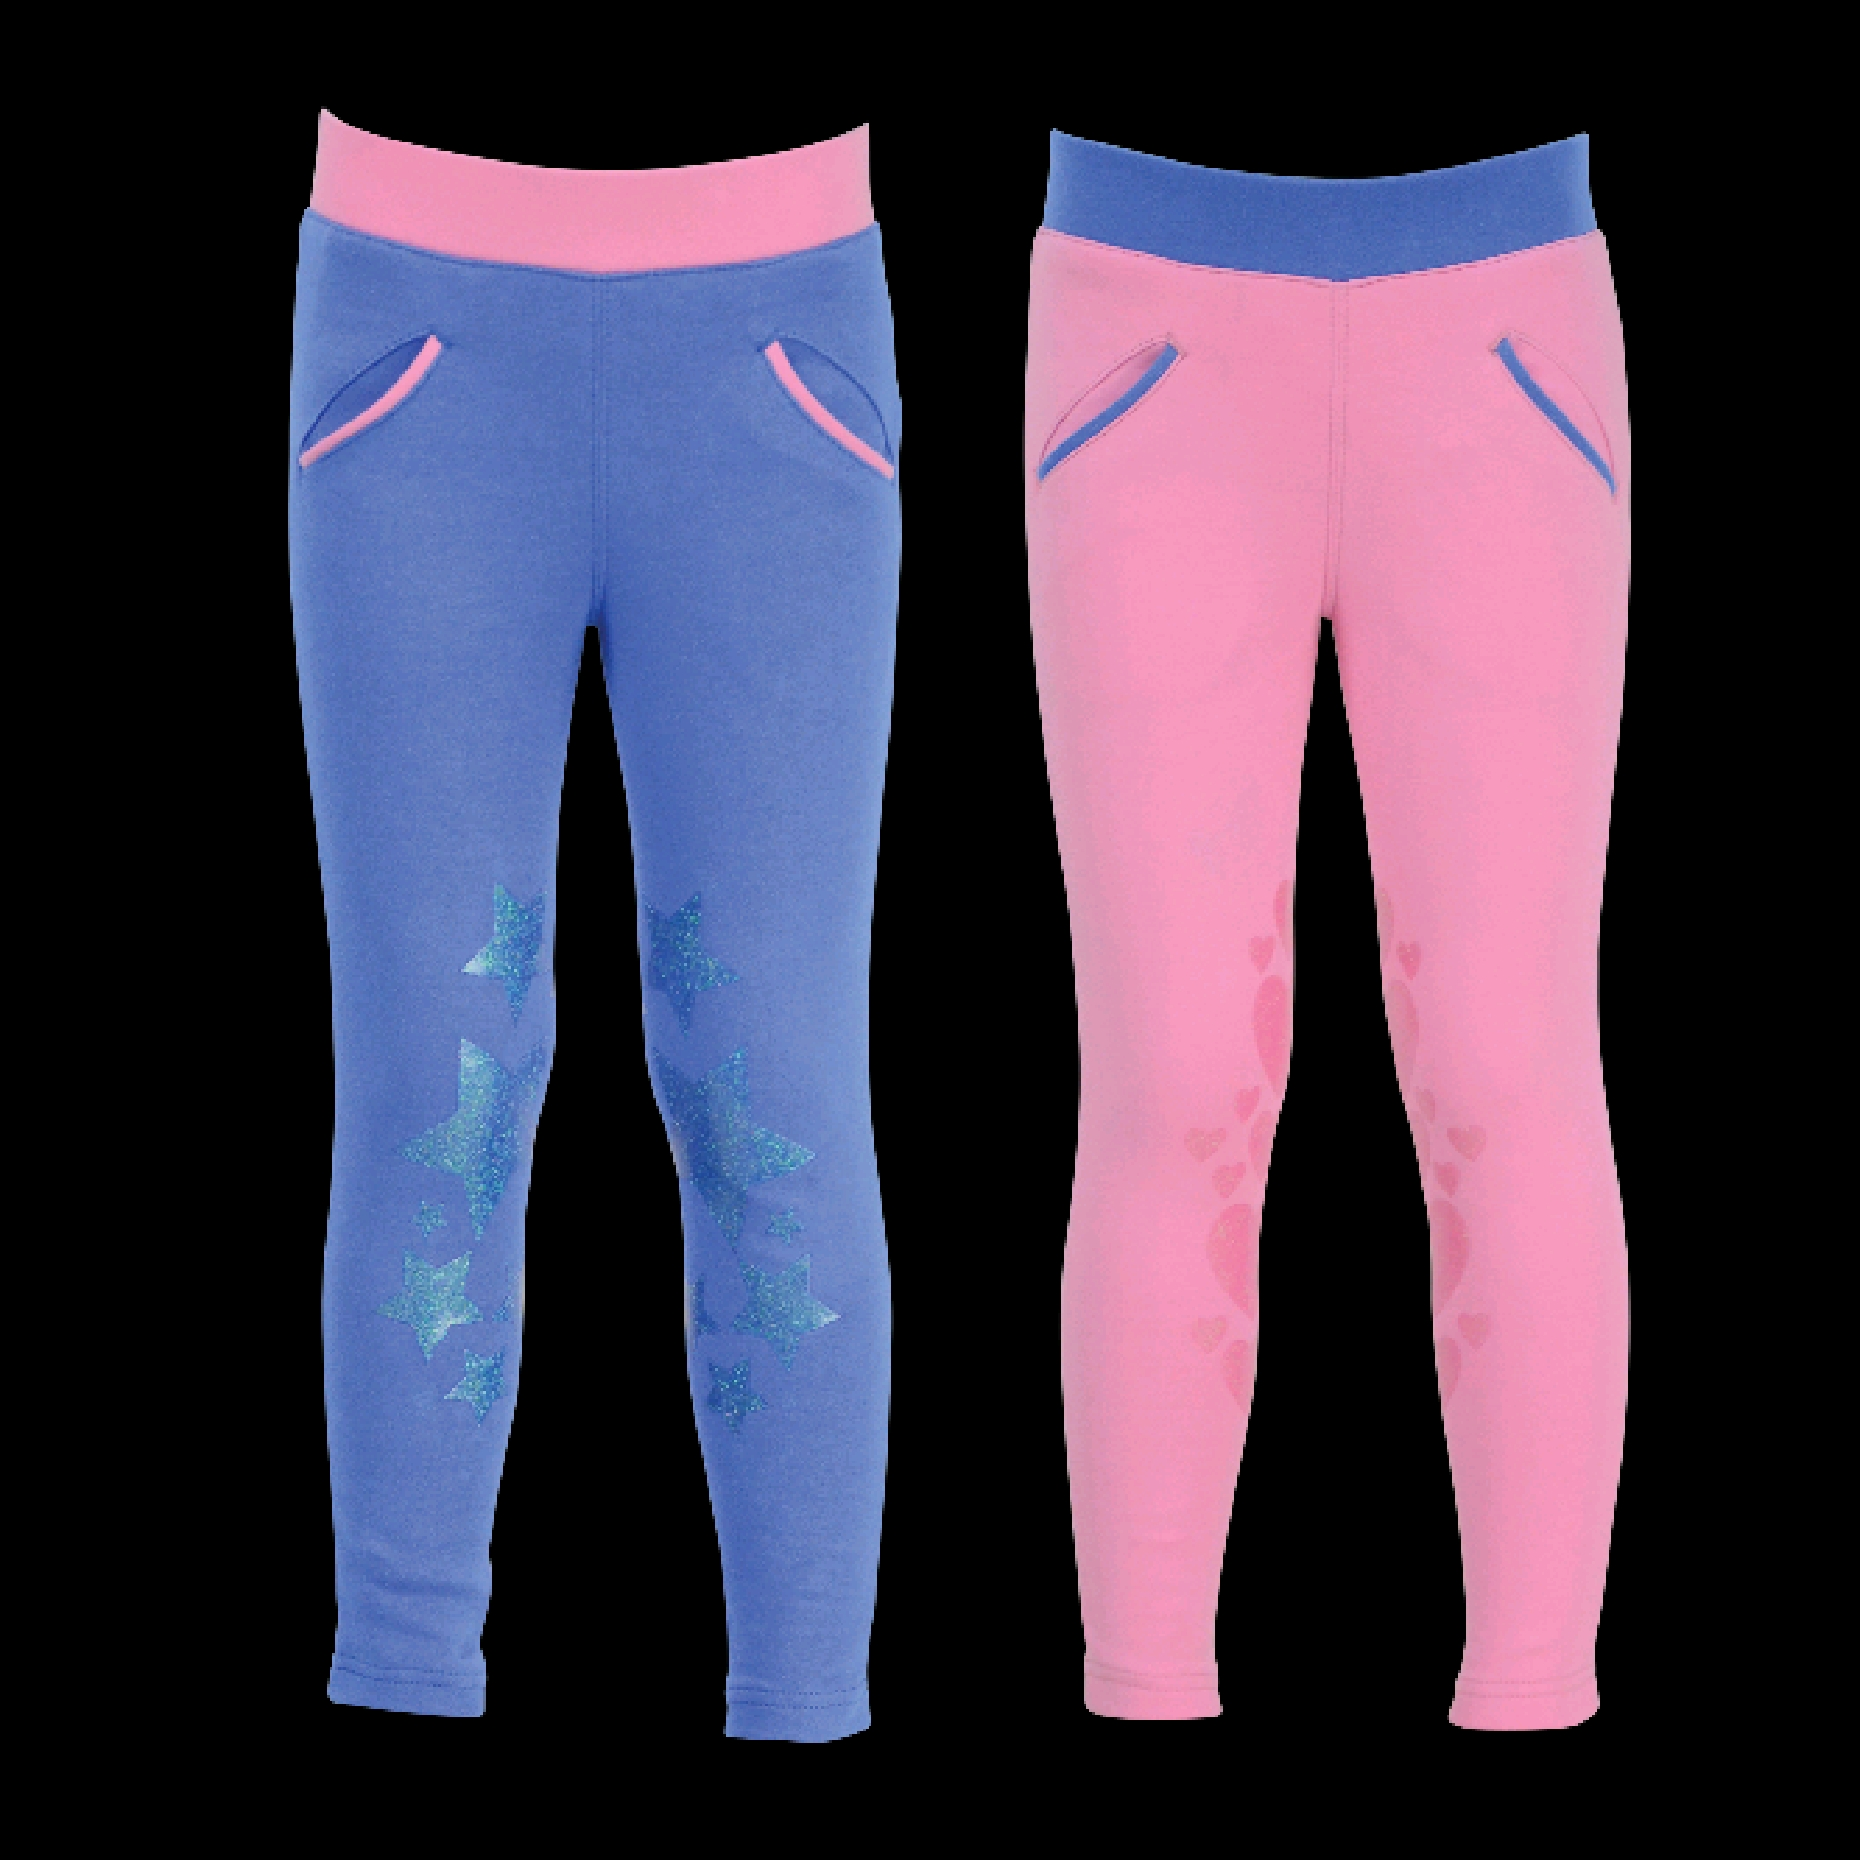 Llittle Rider Leggings